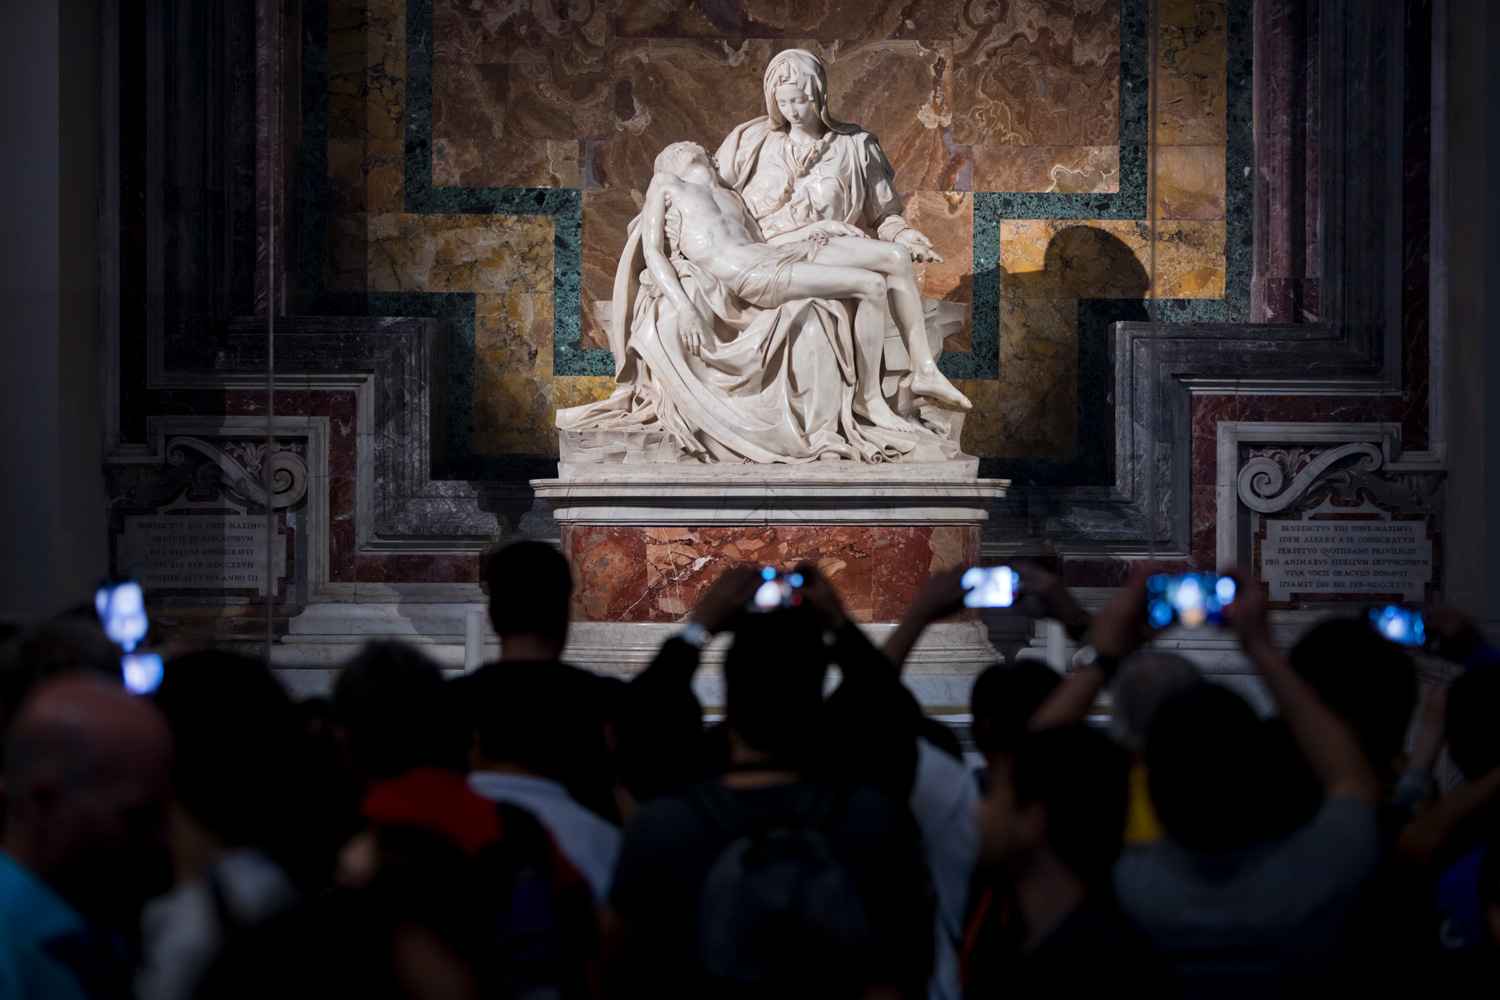 Michelangelo, Pieta, St Peters with crowds